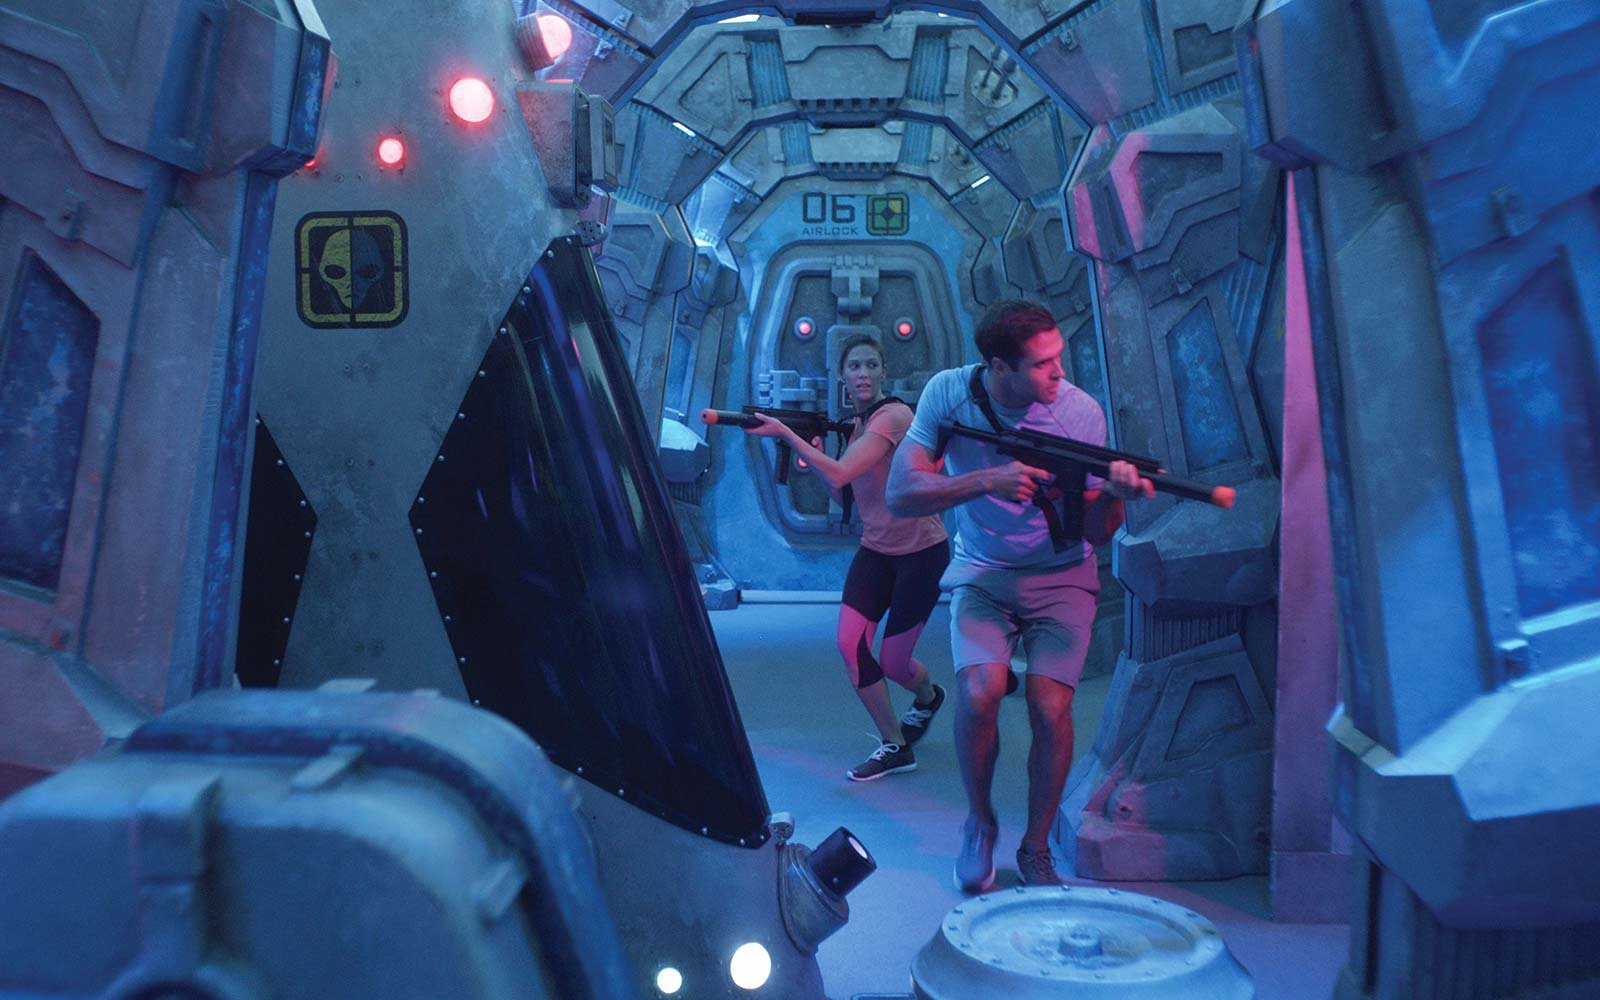 Norwegian Cruise Line Bliss Ship Laser Tag